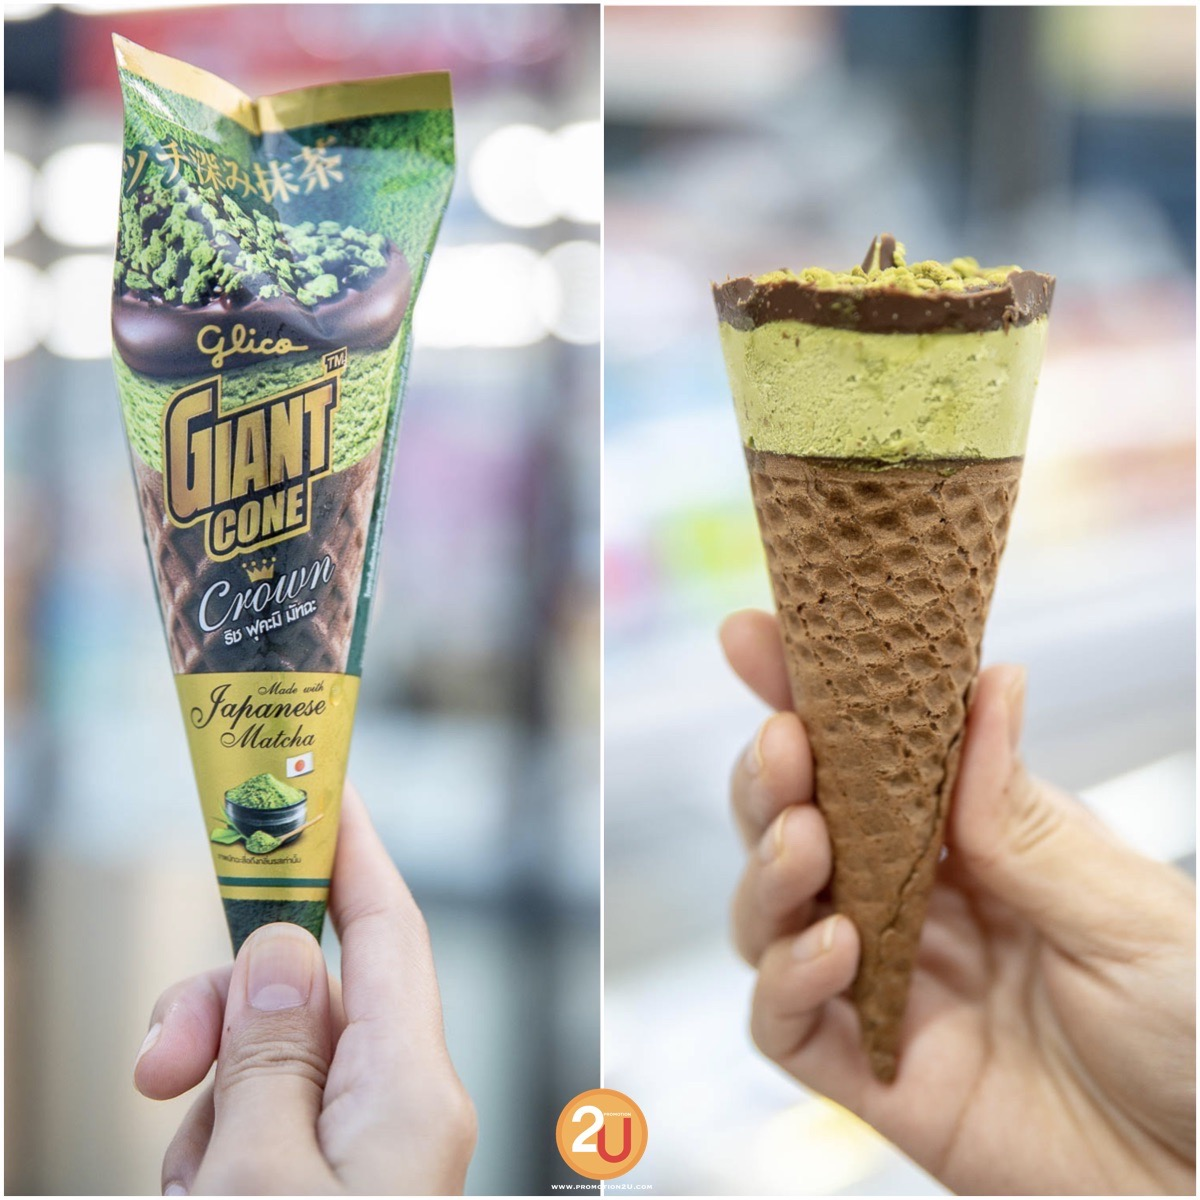 Promotion Gulico Giant Clone Crown Special Discount 30 Baht at 7 11 P03